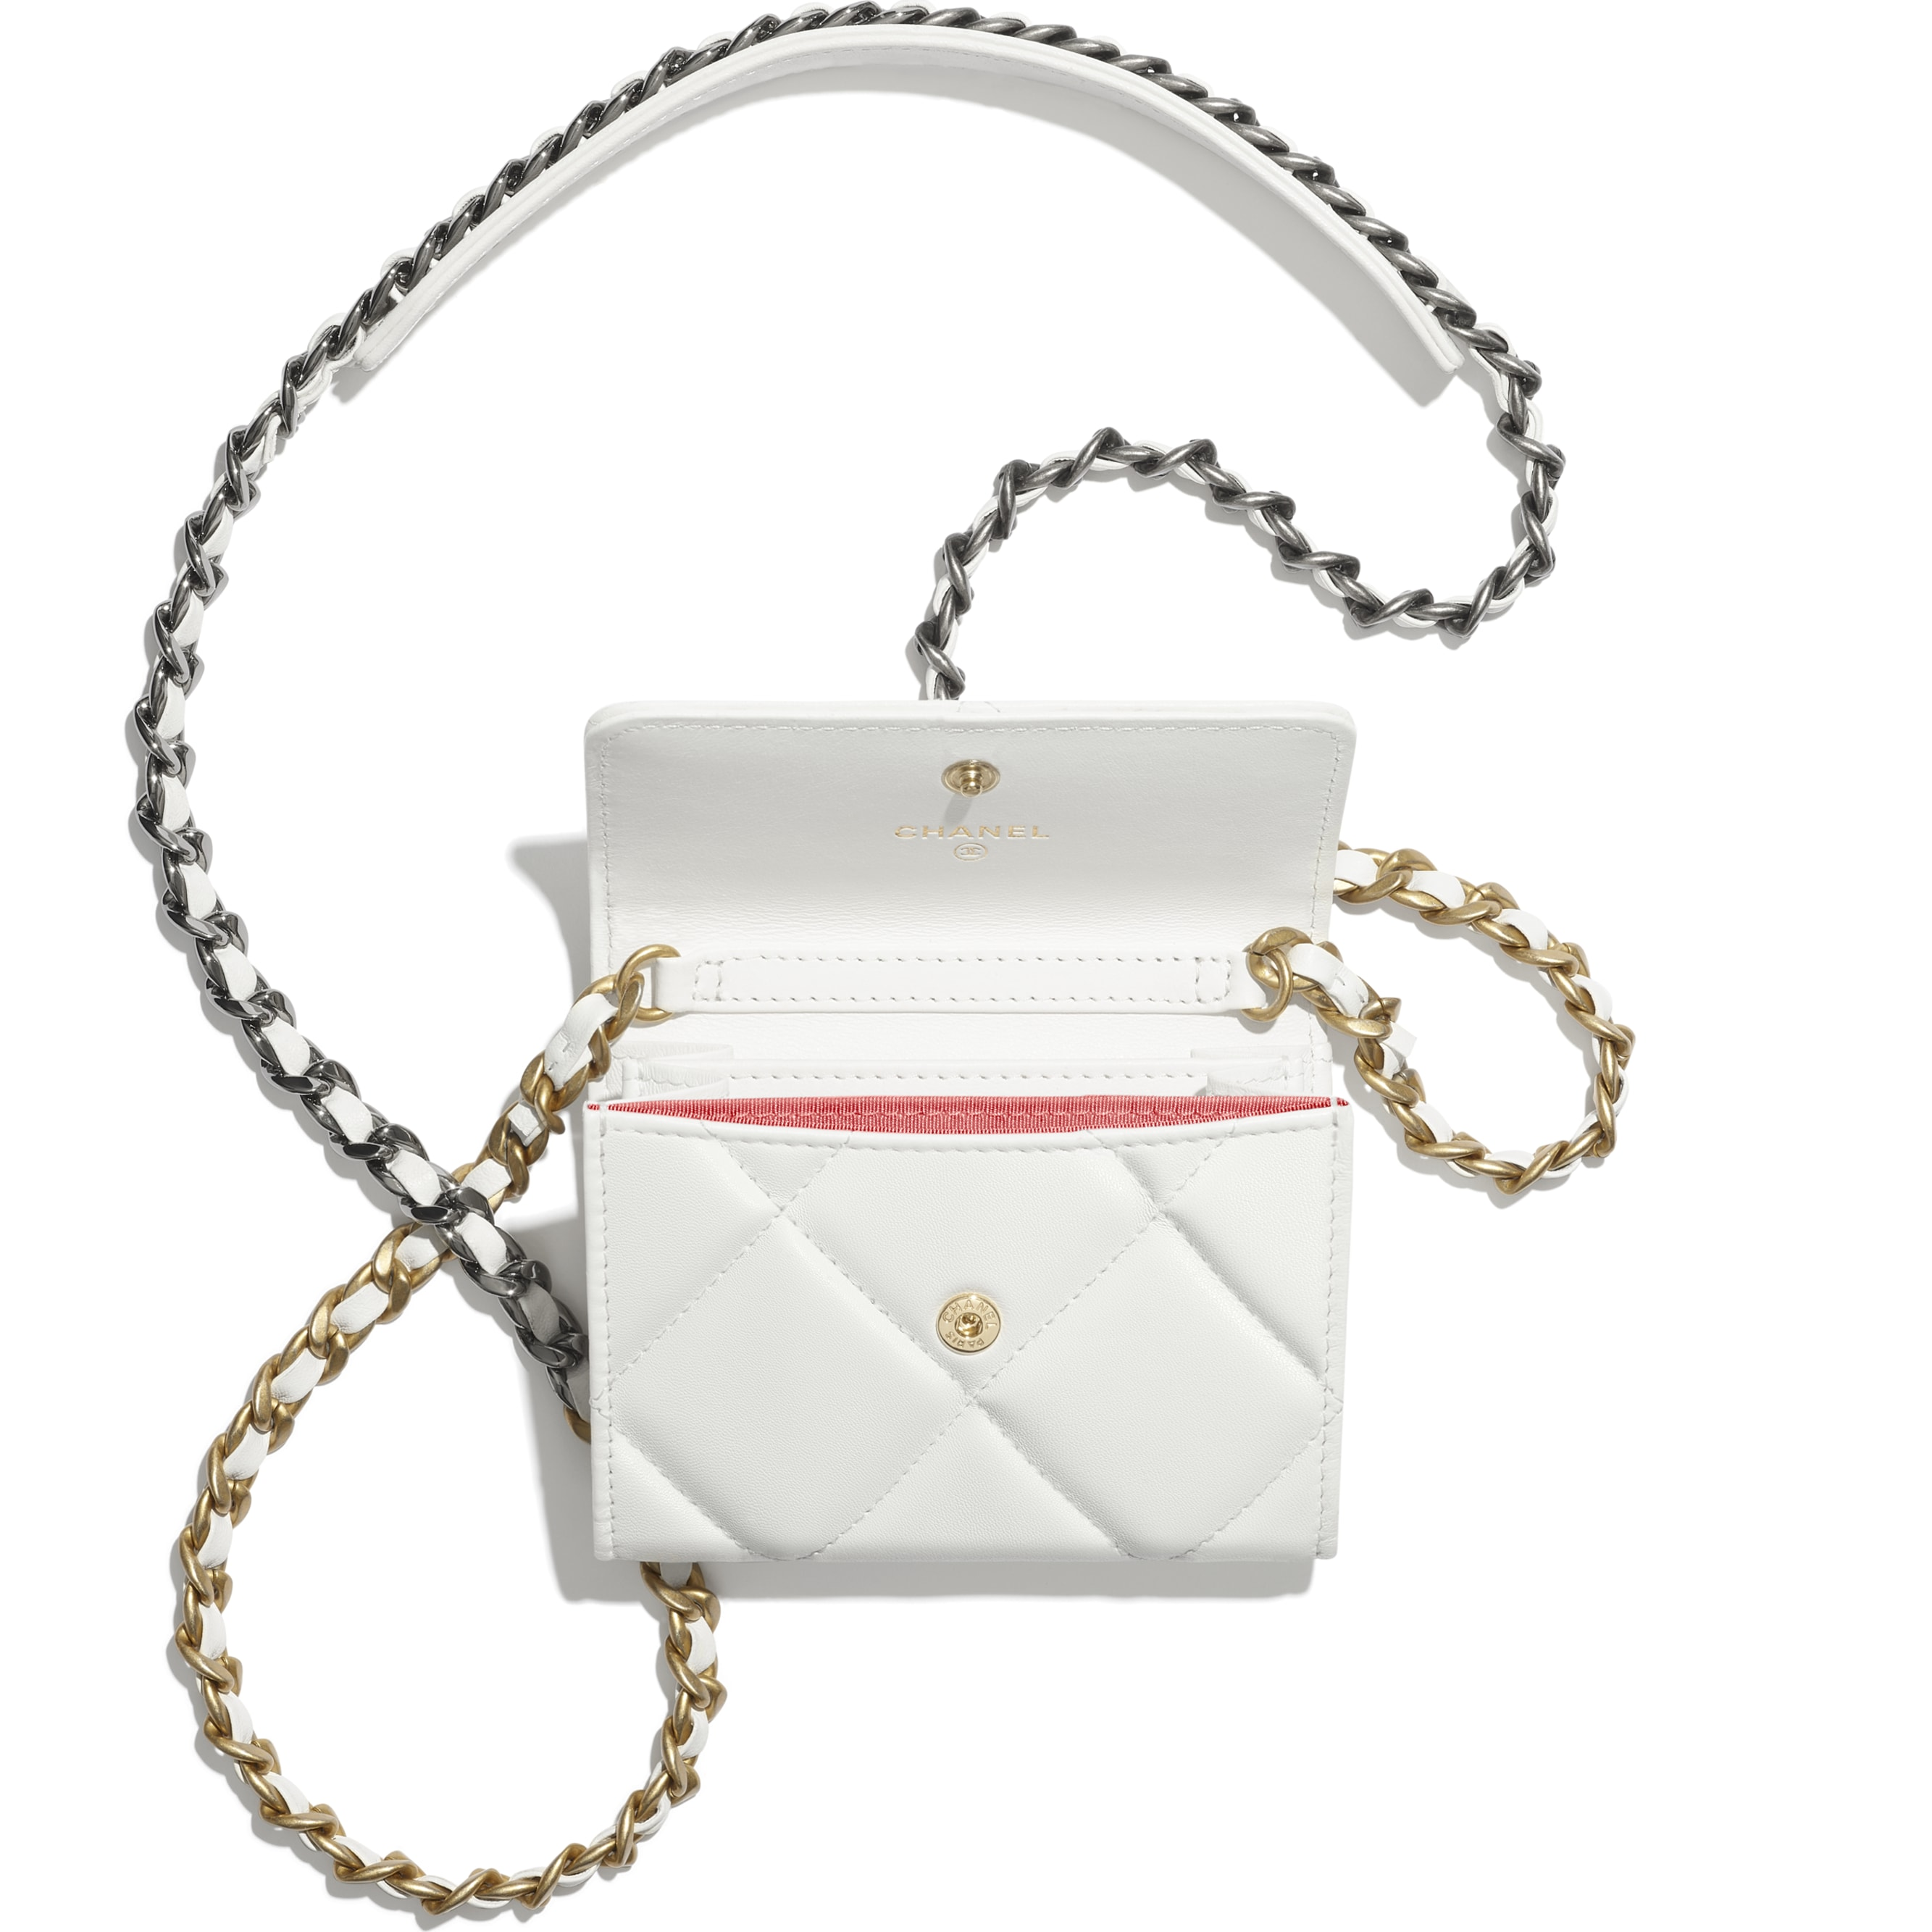 CHANEL 19 Flap Coin Purse with Chain - White - Lambskin, Gold-Tone, Silver-Tone & Ruthenium-Finish Metal - CHANEL - Alternative view - see standard sized version